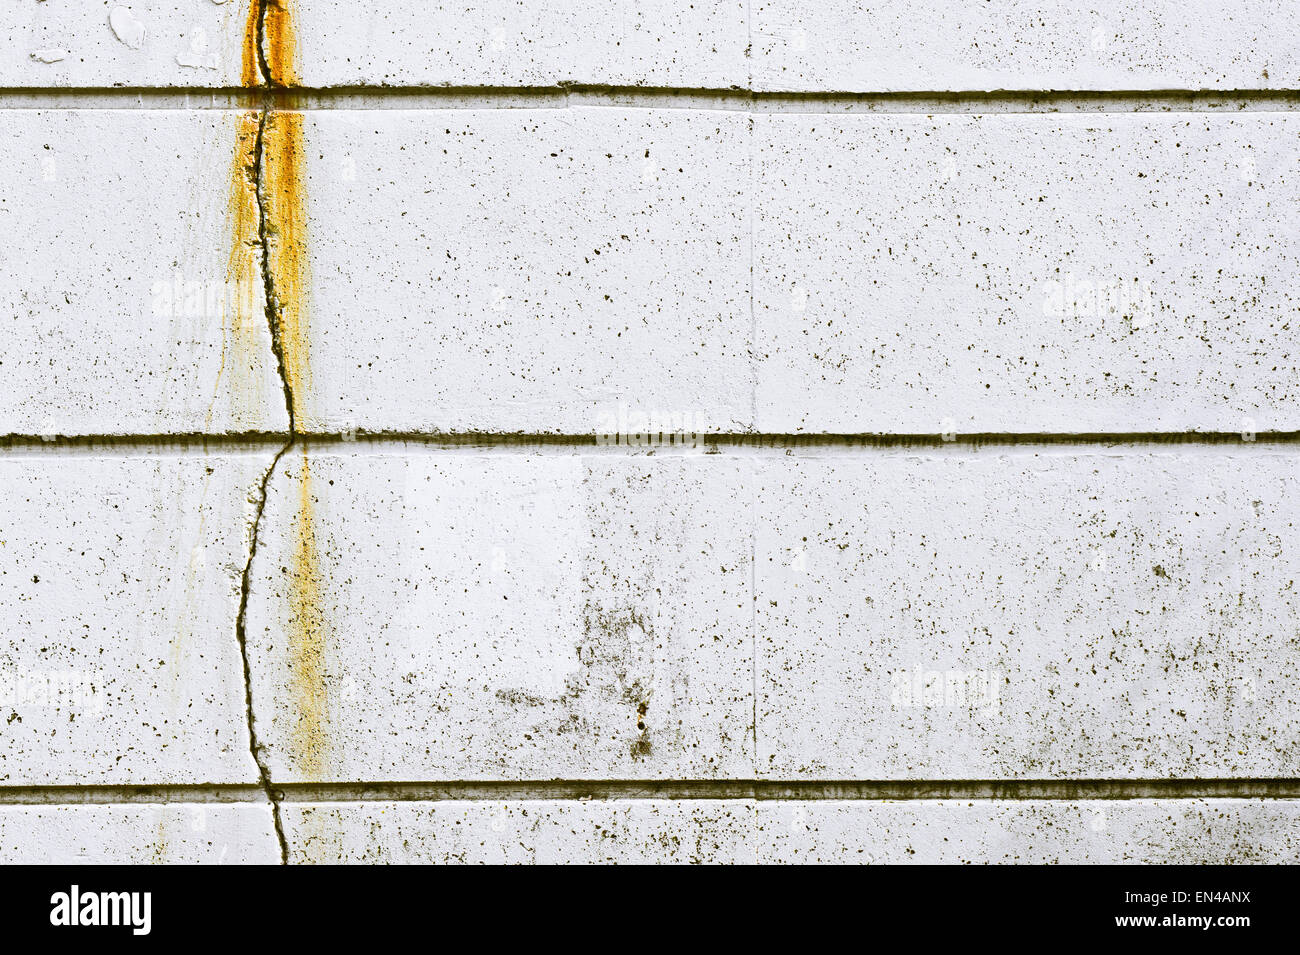 A vertical crack in a stone wall Stock Photo